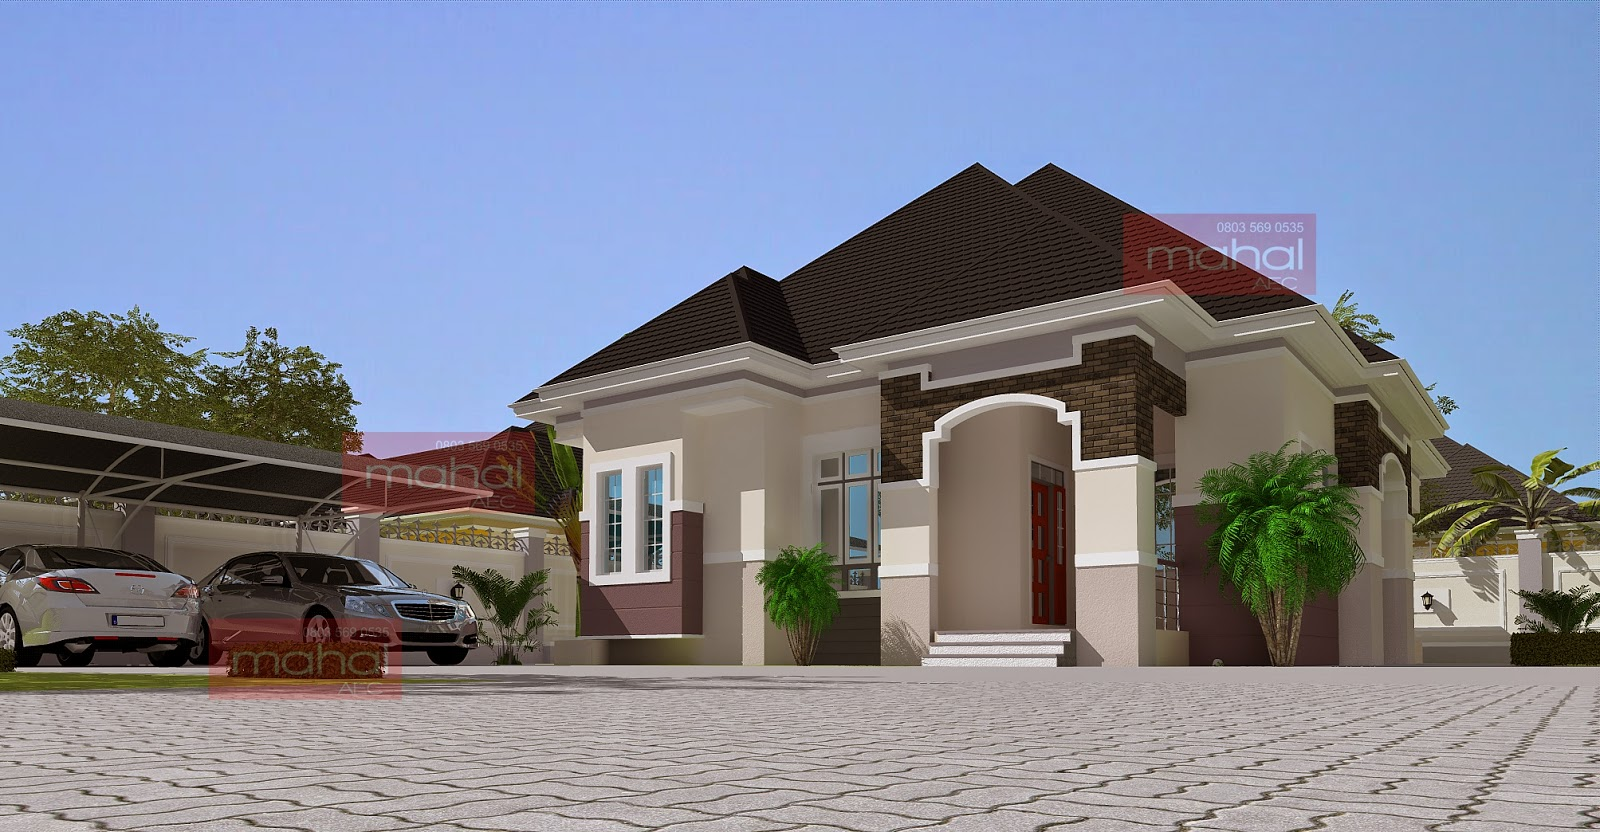 New design bungalows in nigeria for Nigeria house plans